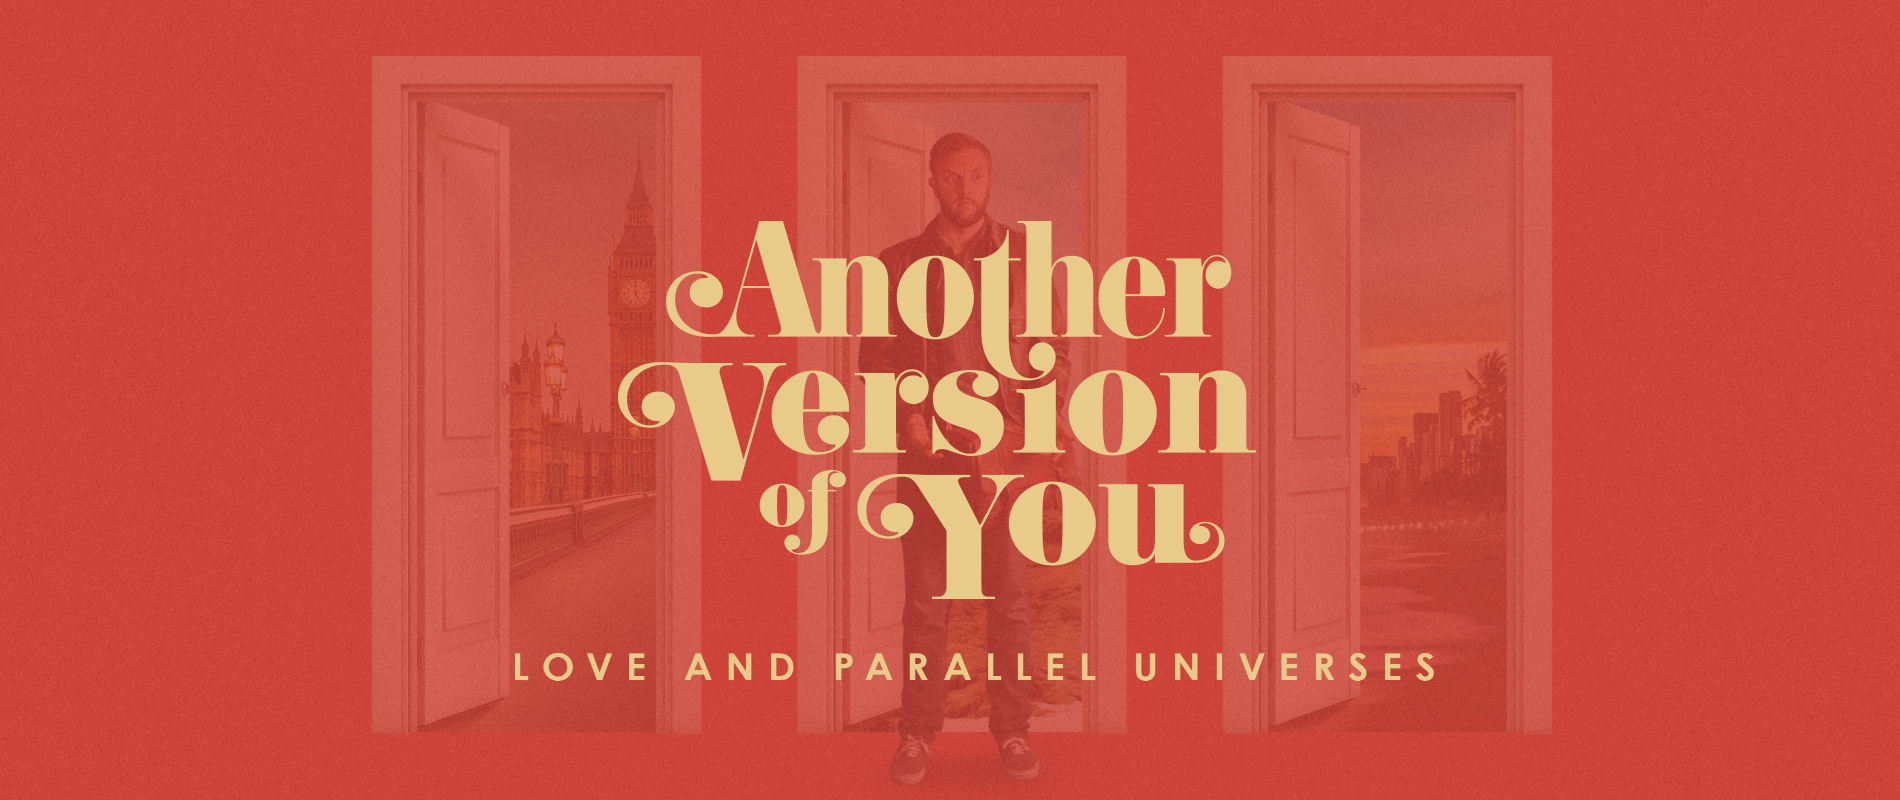 Another Version of You film